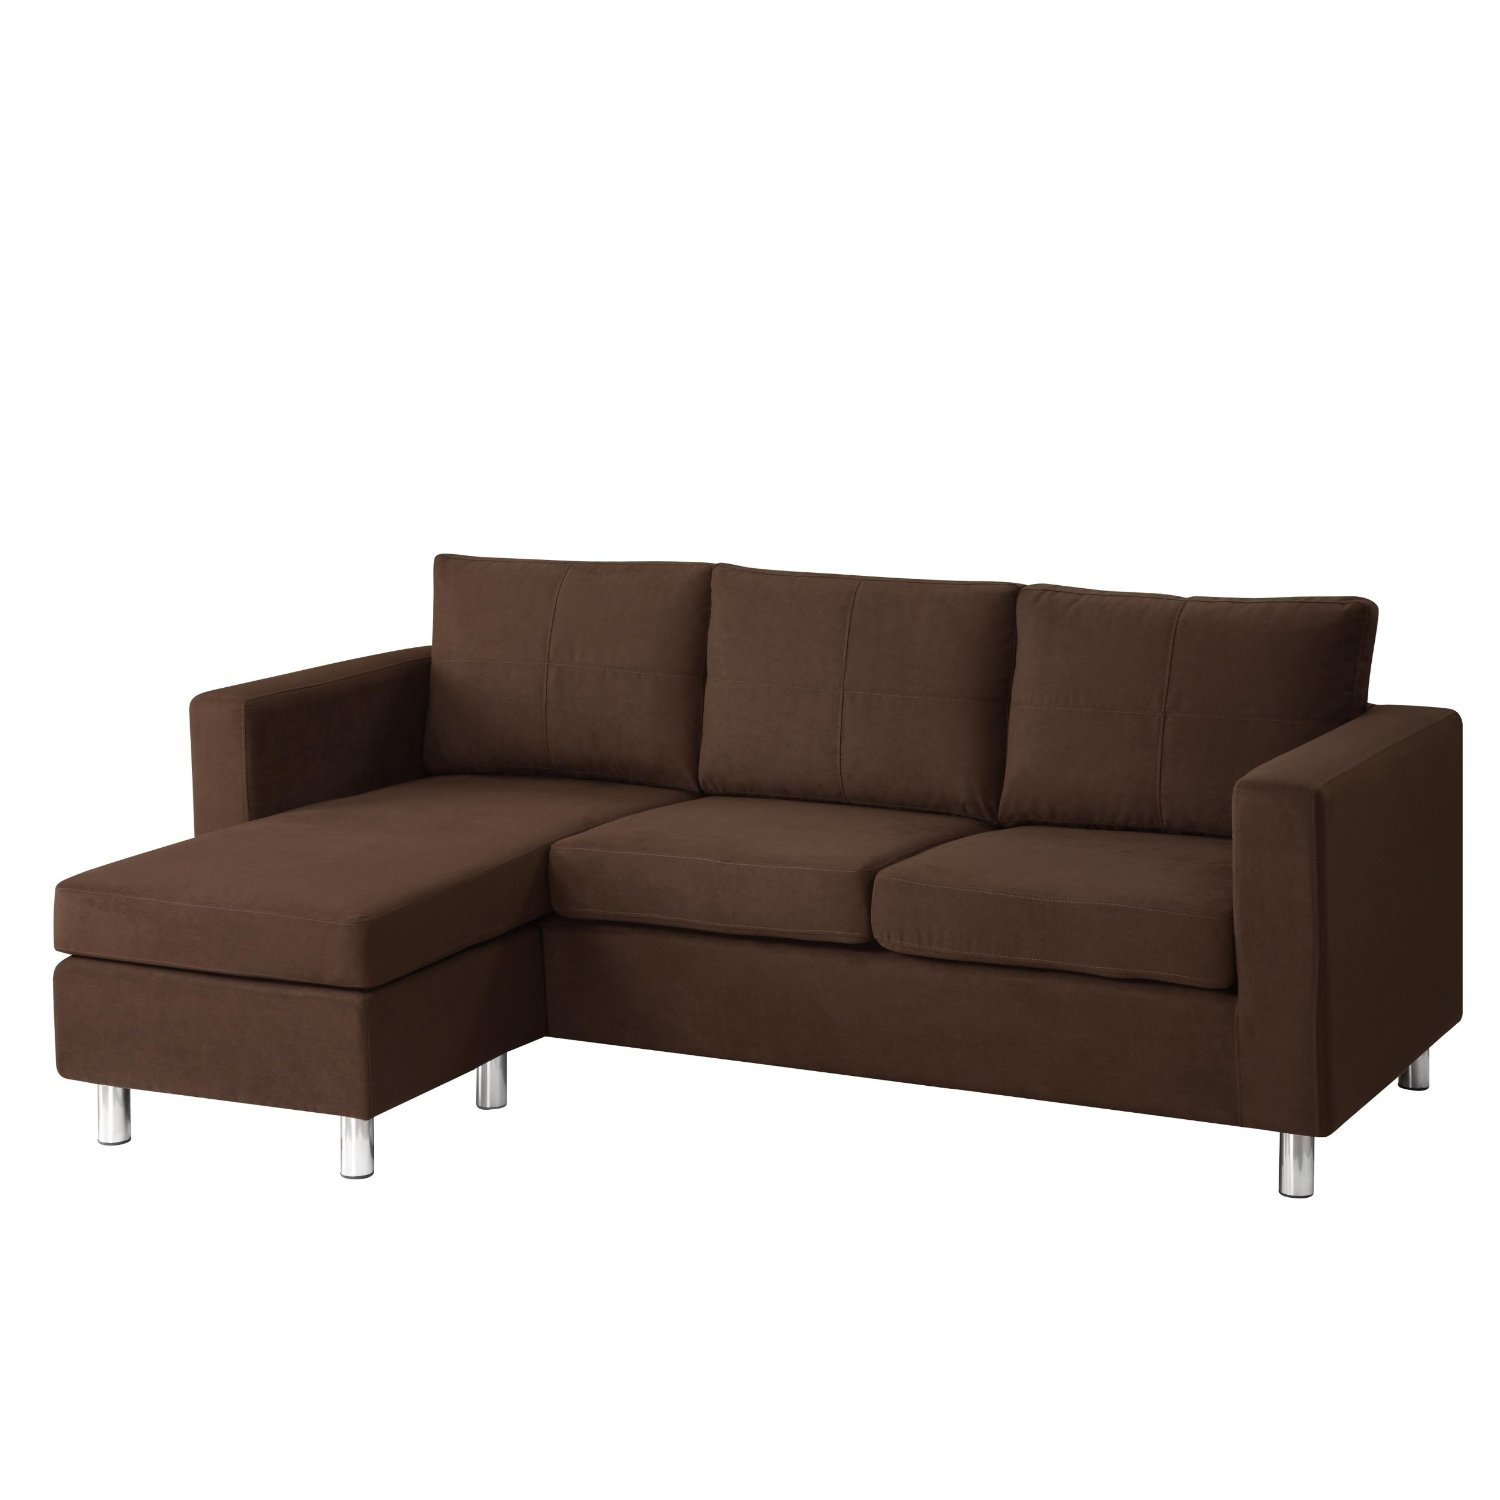 Best sectional couches reviews home improvement Best loveseats